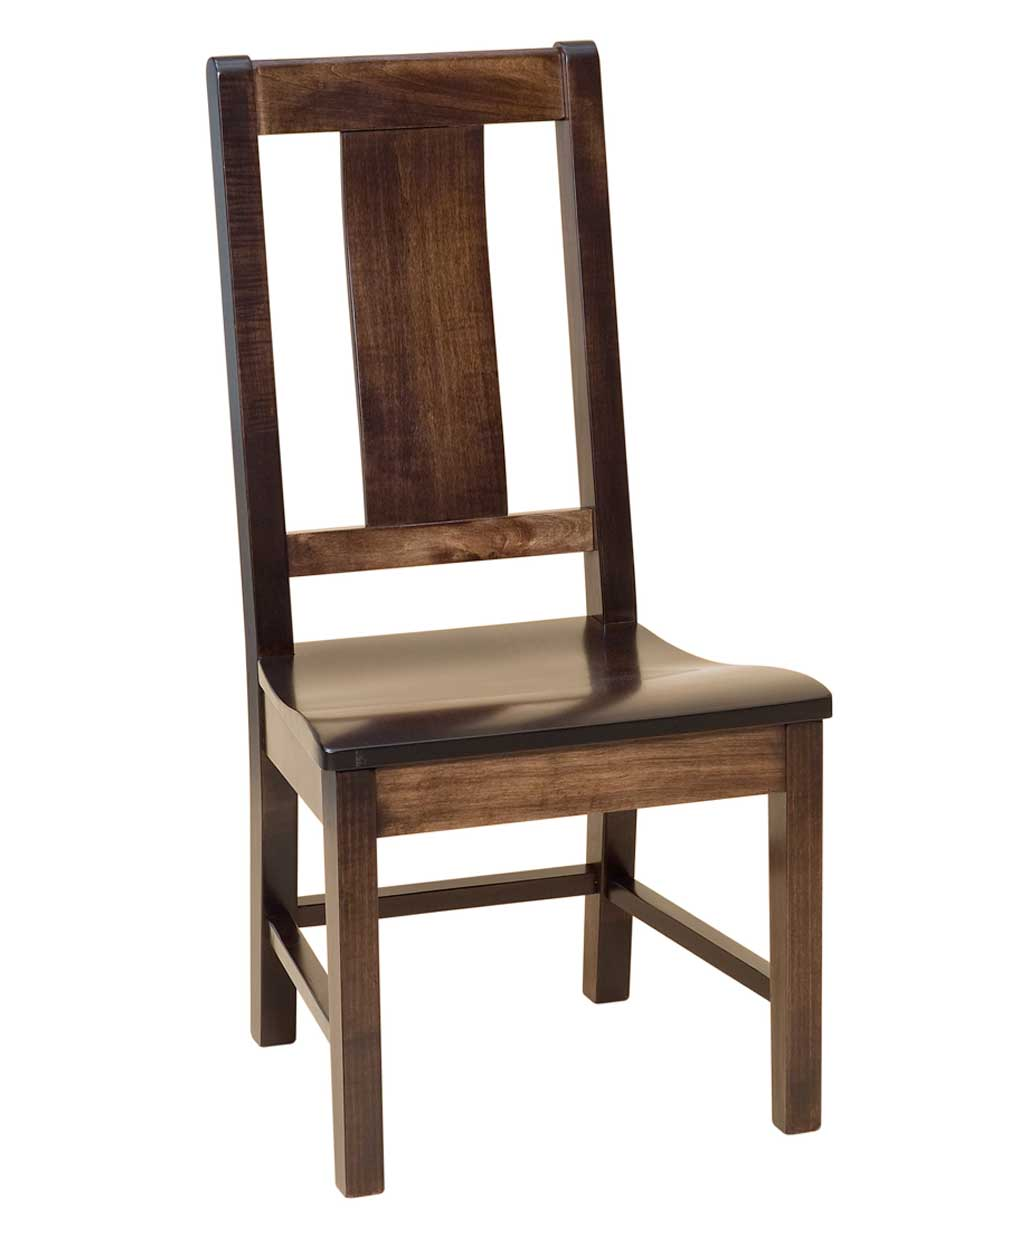 Benson dining chair amish direct furniture for Direct furniture